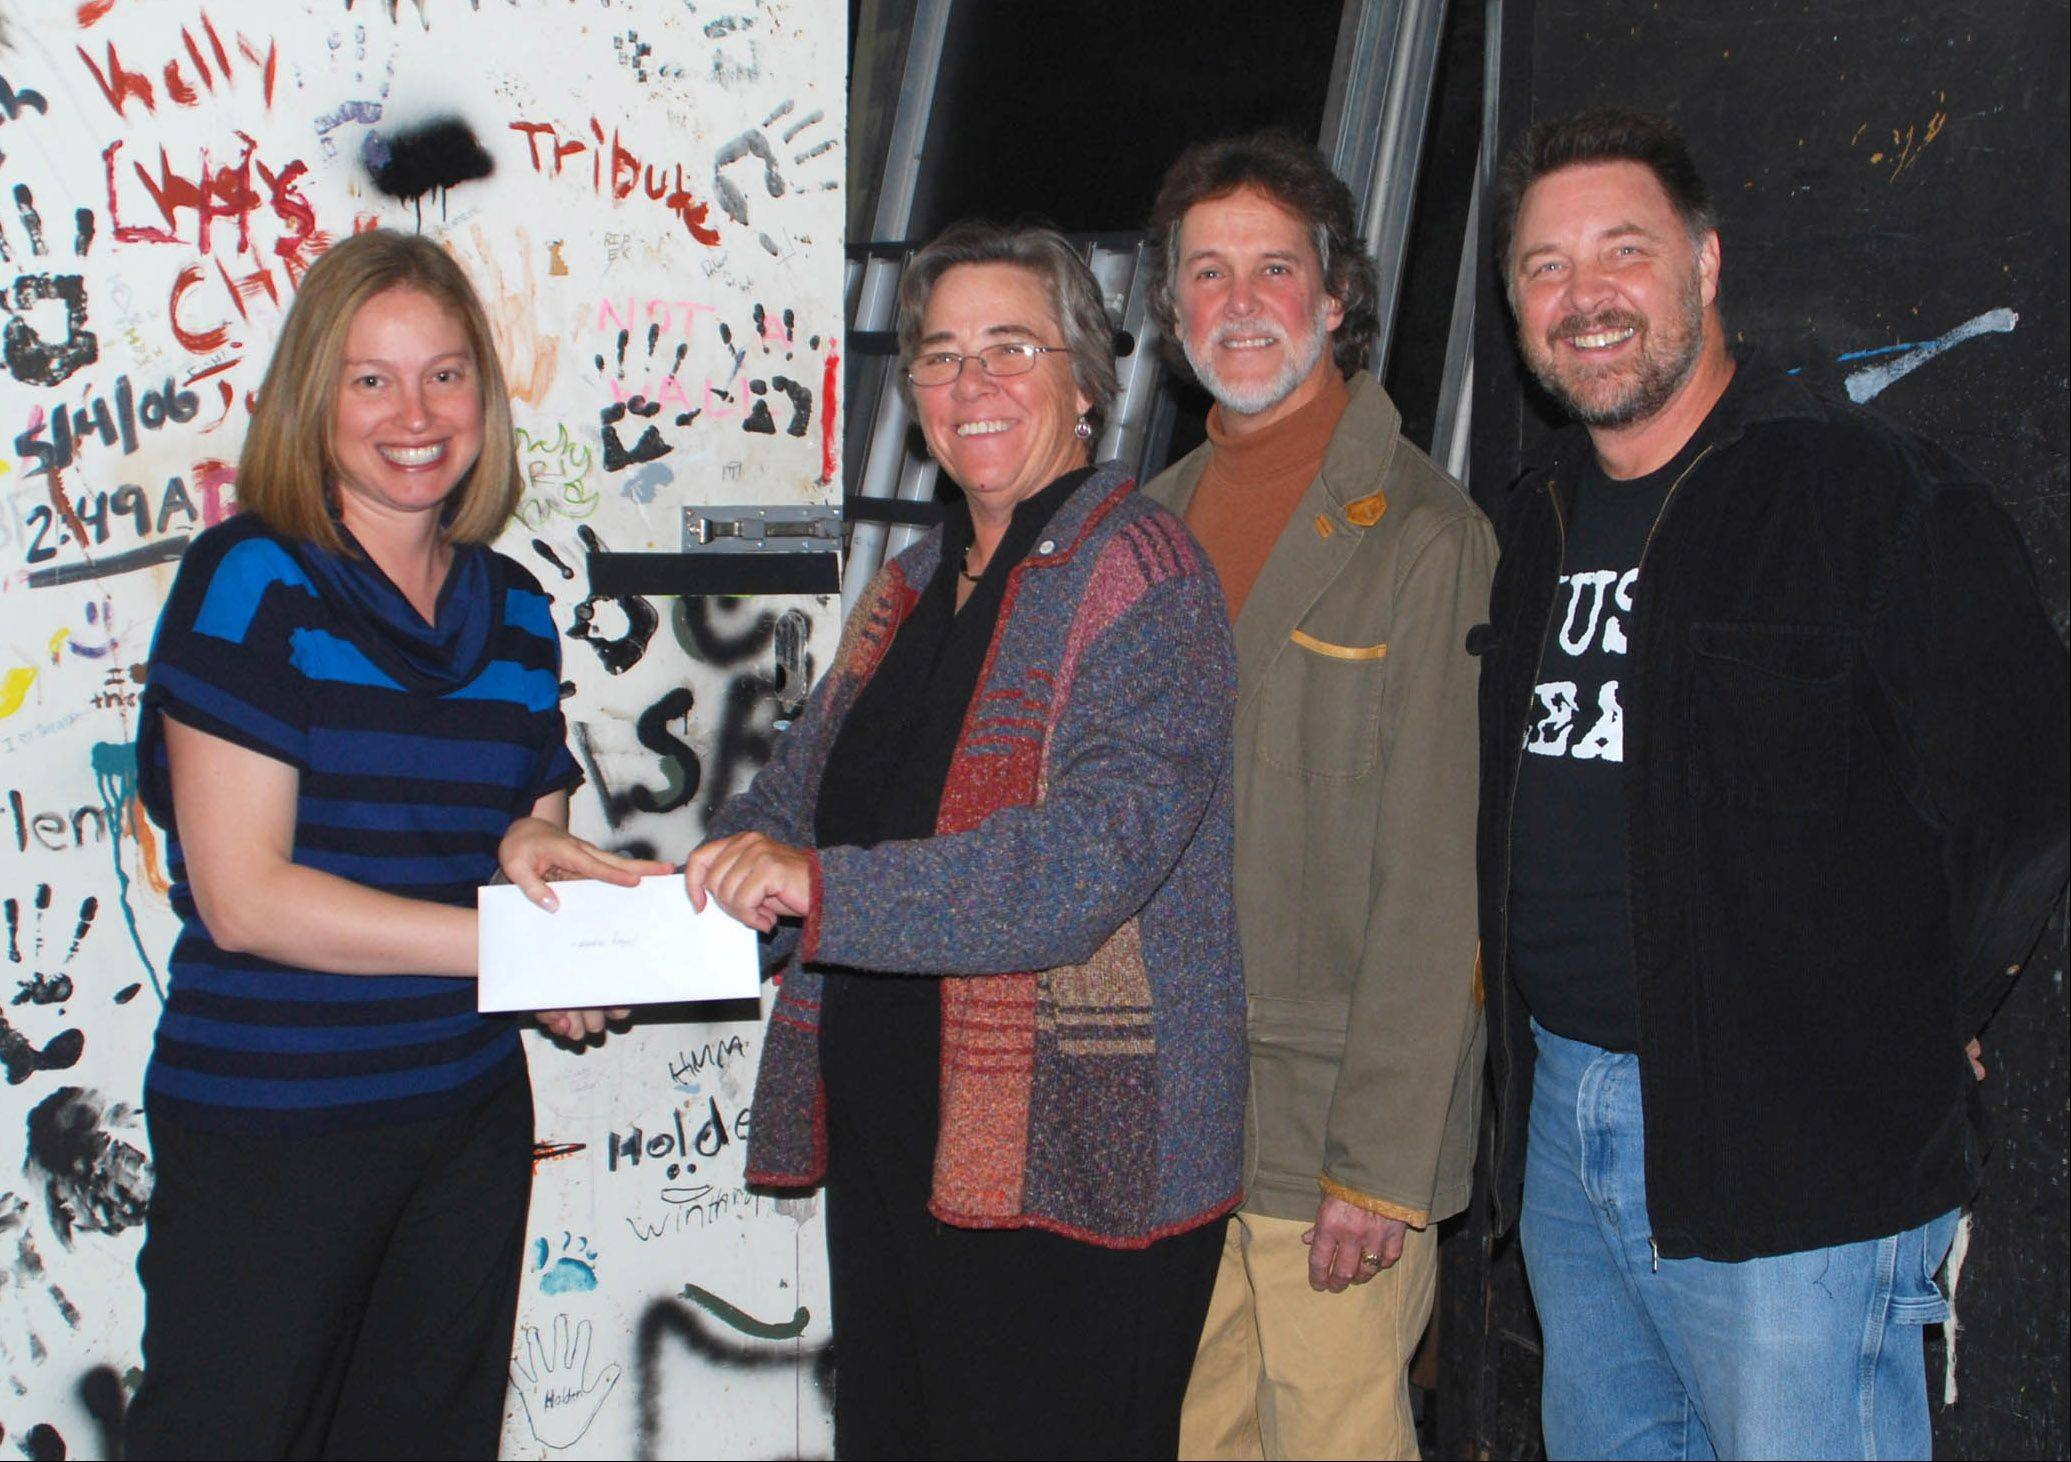 Mundelein High School's theater program has received a $500 grant from a local theater group.